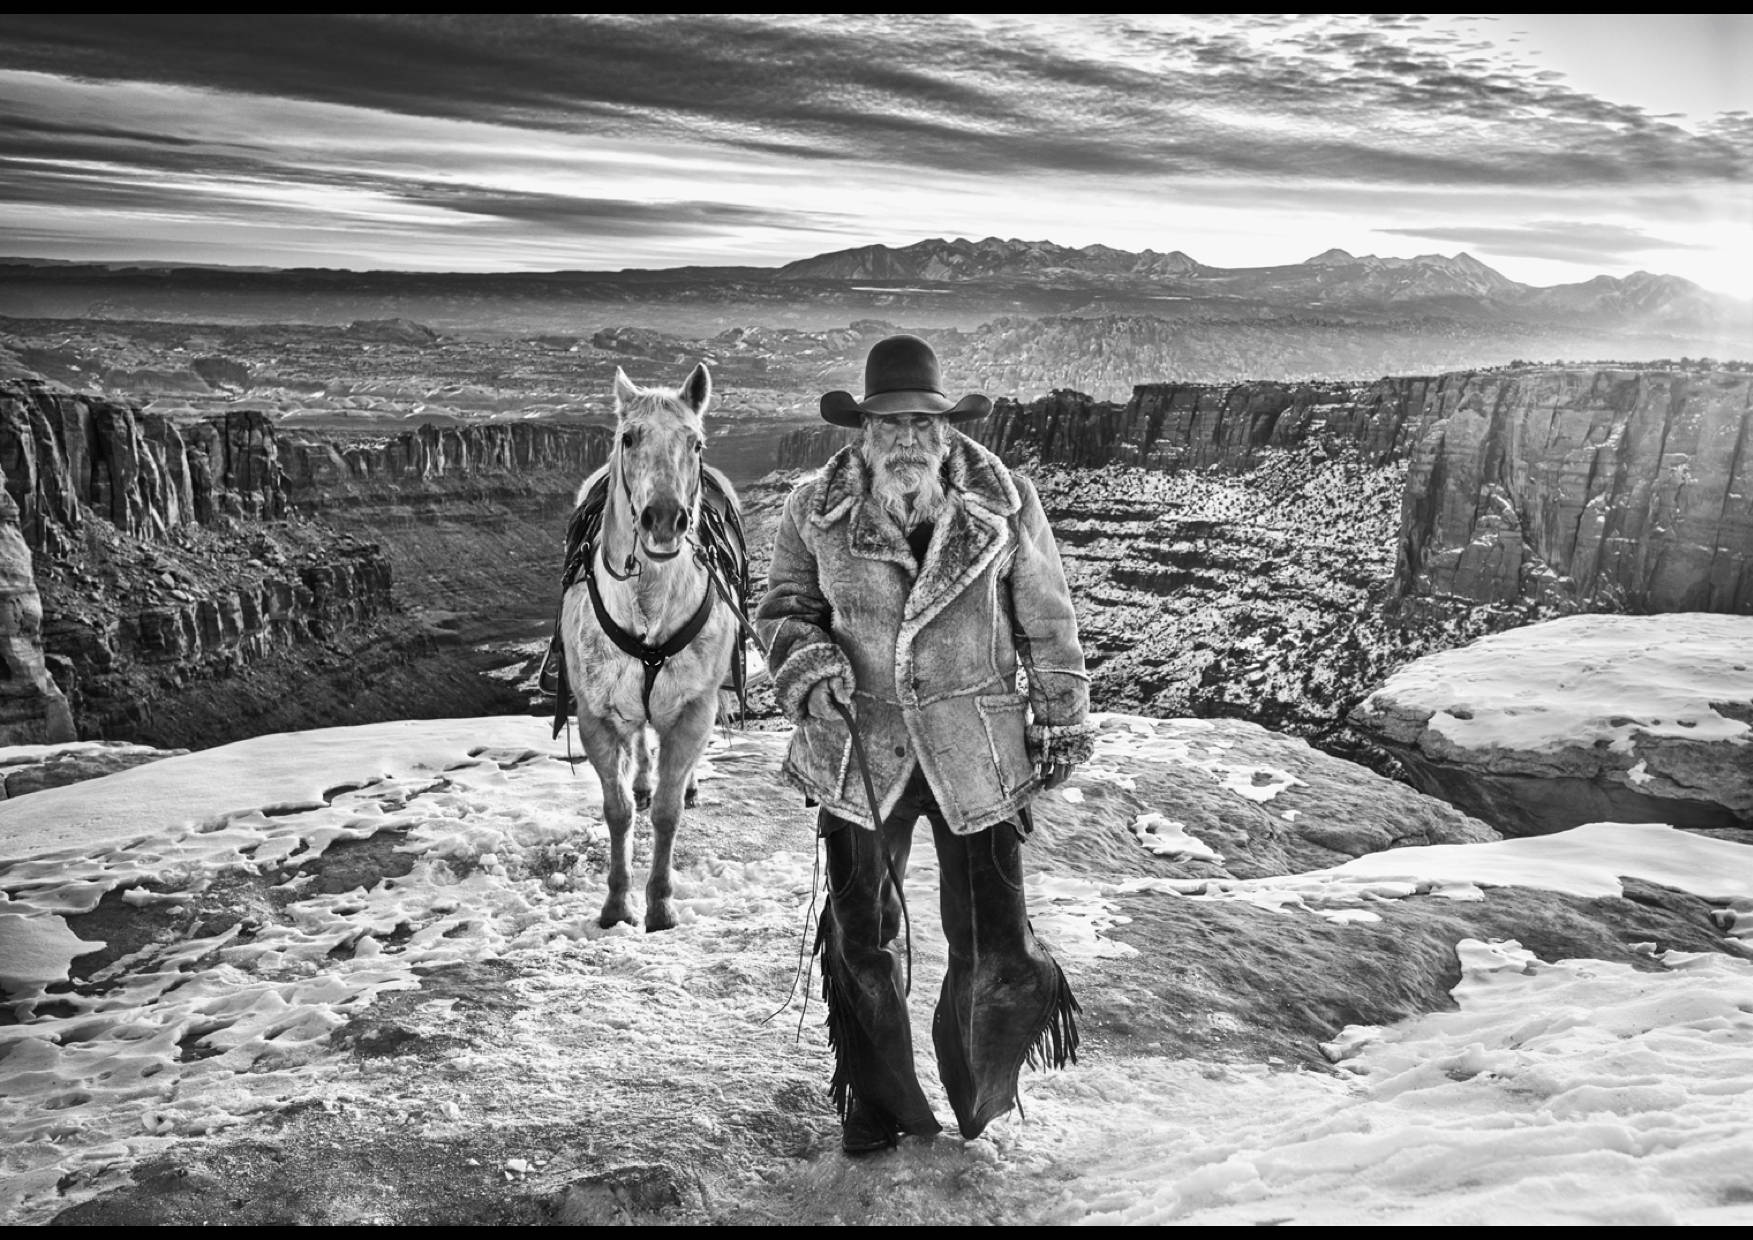 David Yarrow Photography at Sorrel Sky Gallery. The Wild West 2021 Series a cowboy and a horse in Canyonlands.